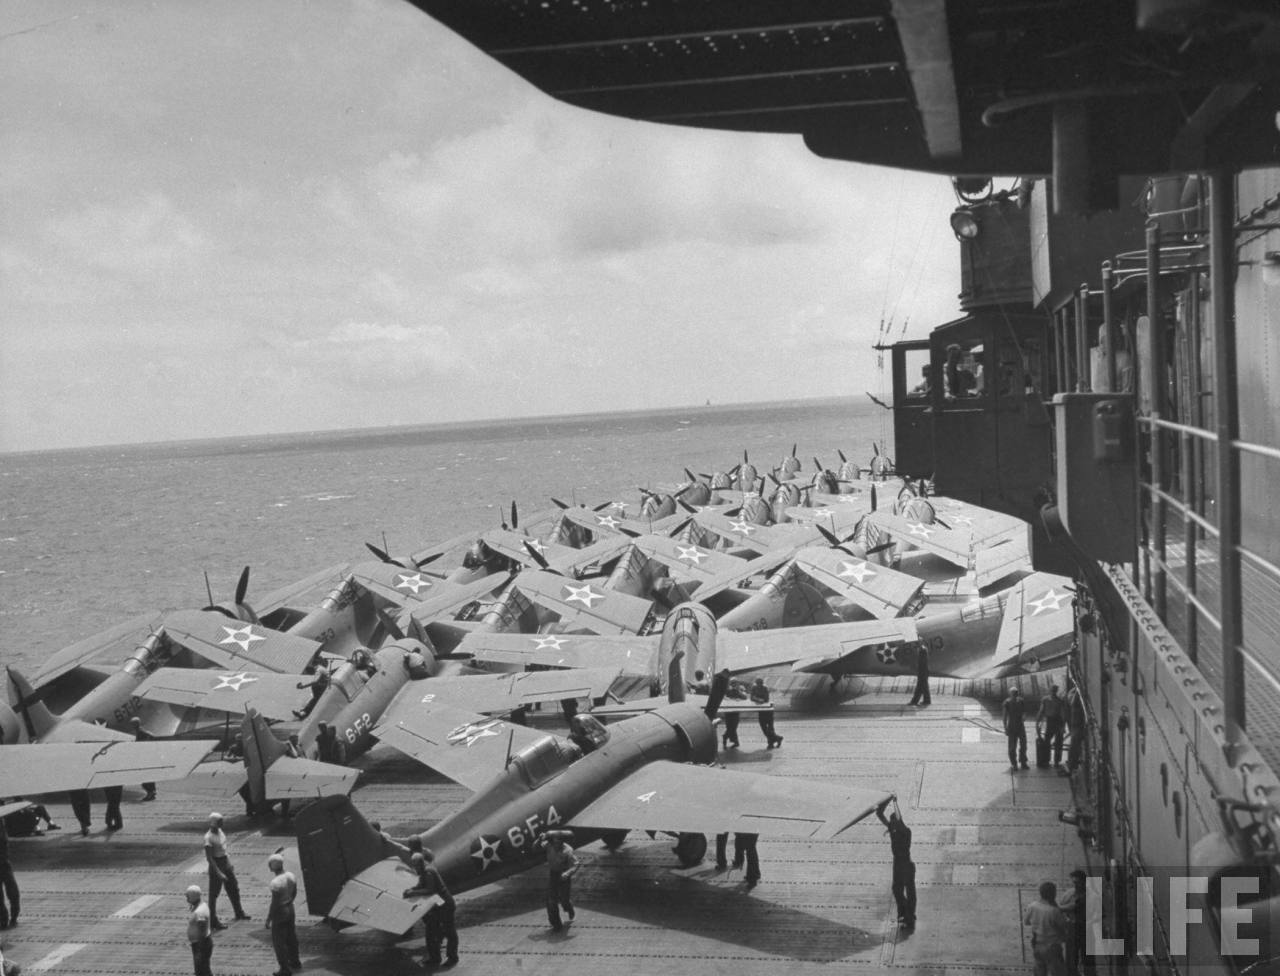 Grumman F4F-3 Wildcats aboard the Enterprise